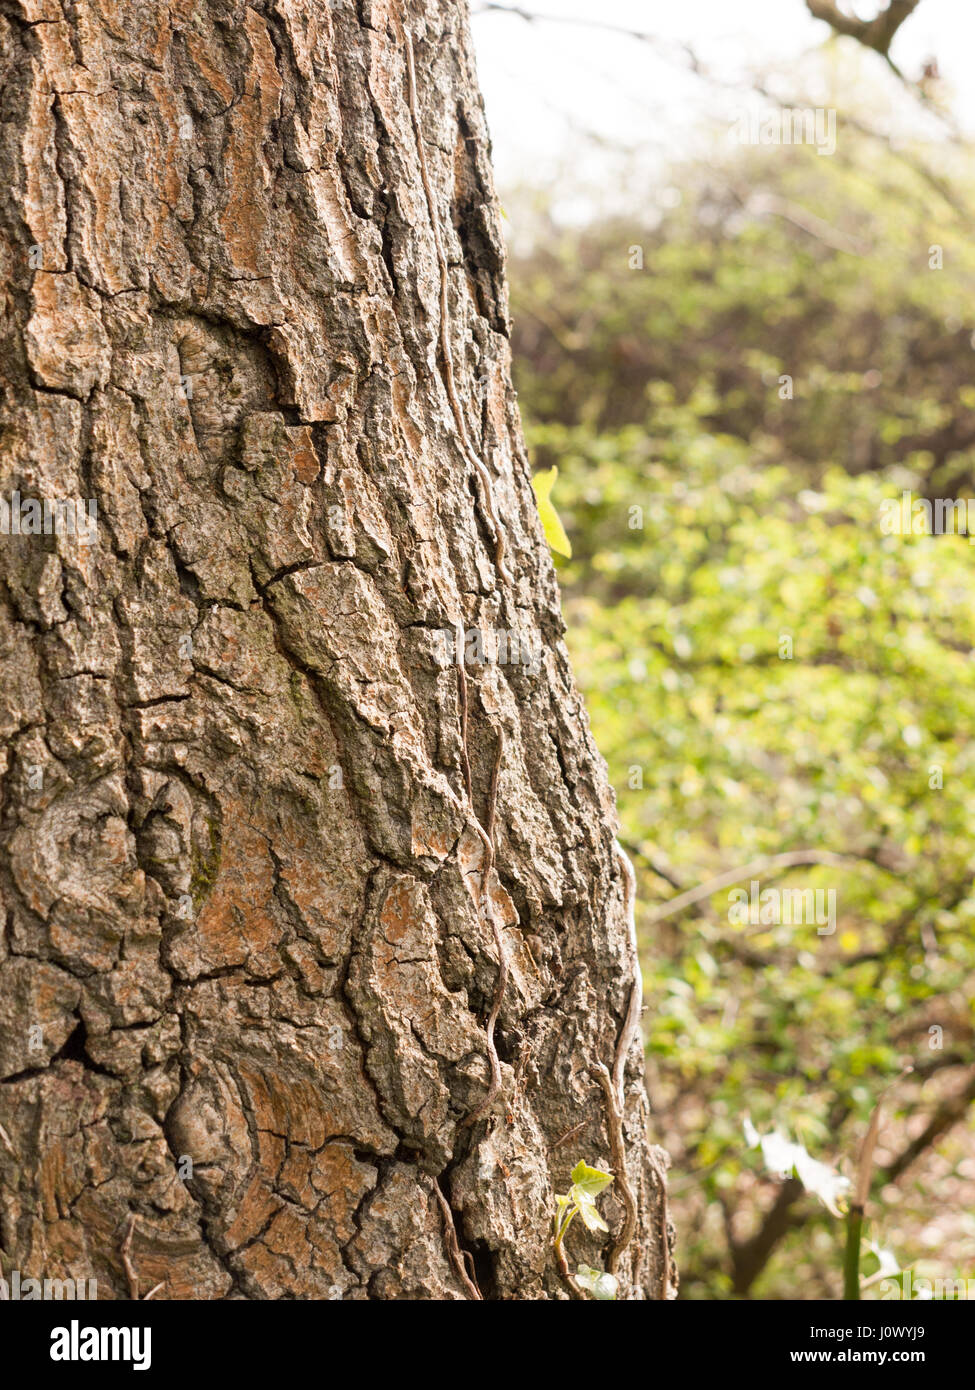 Close up of Tree Bark With Quality Texture and Detail and blurred Background with Grass - Stock Image